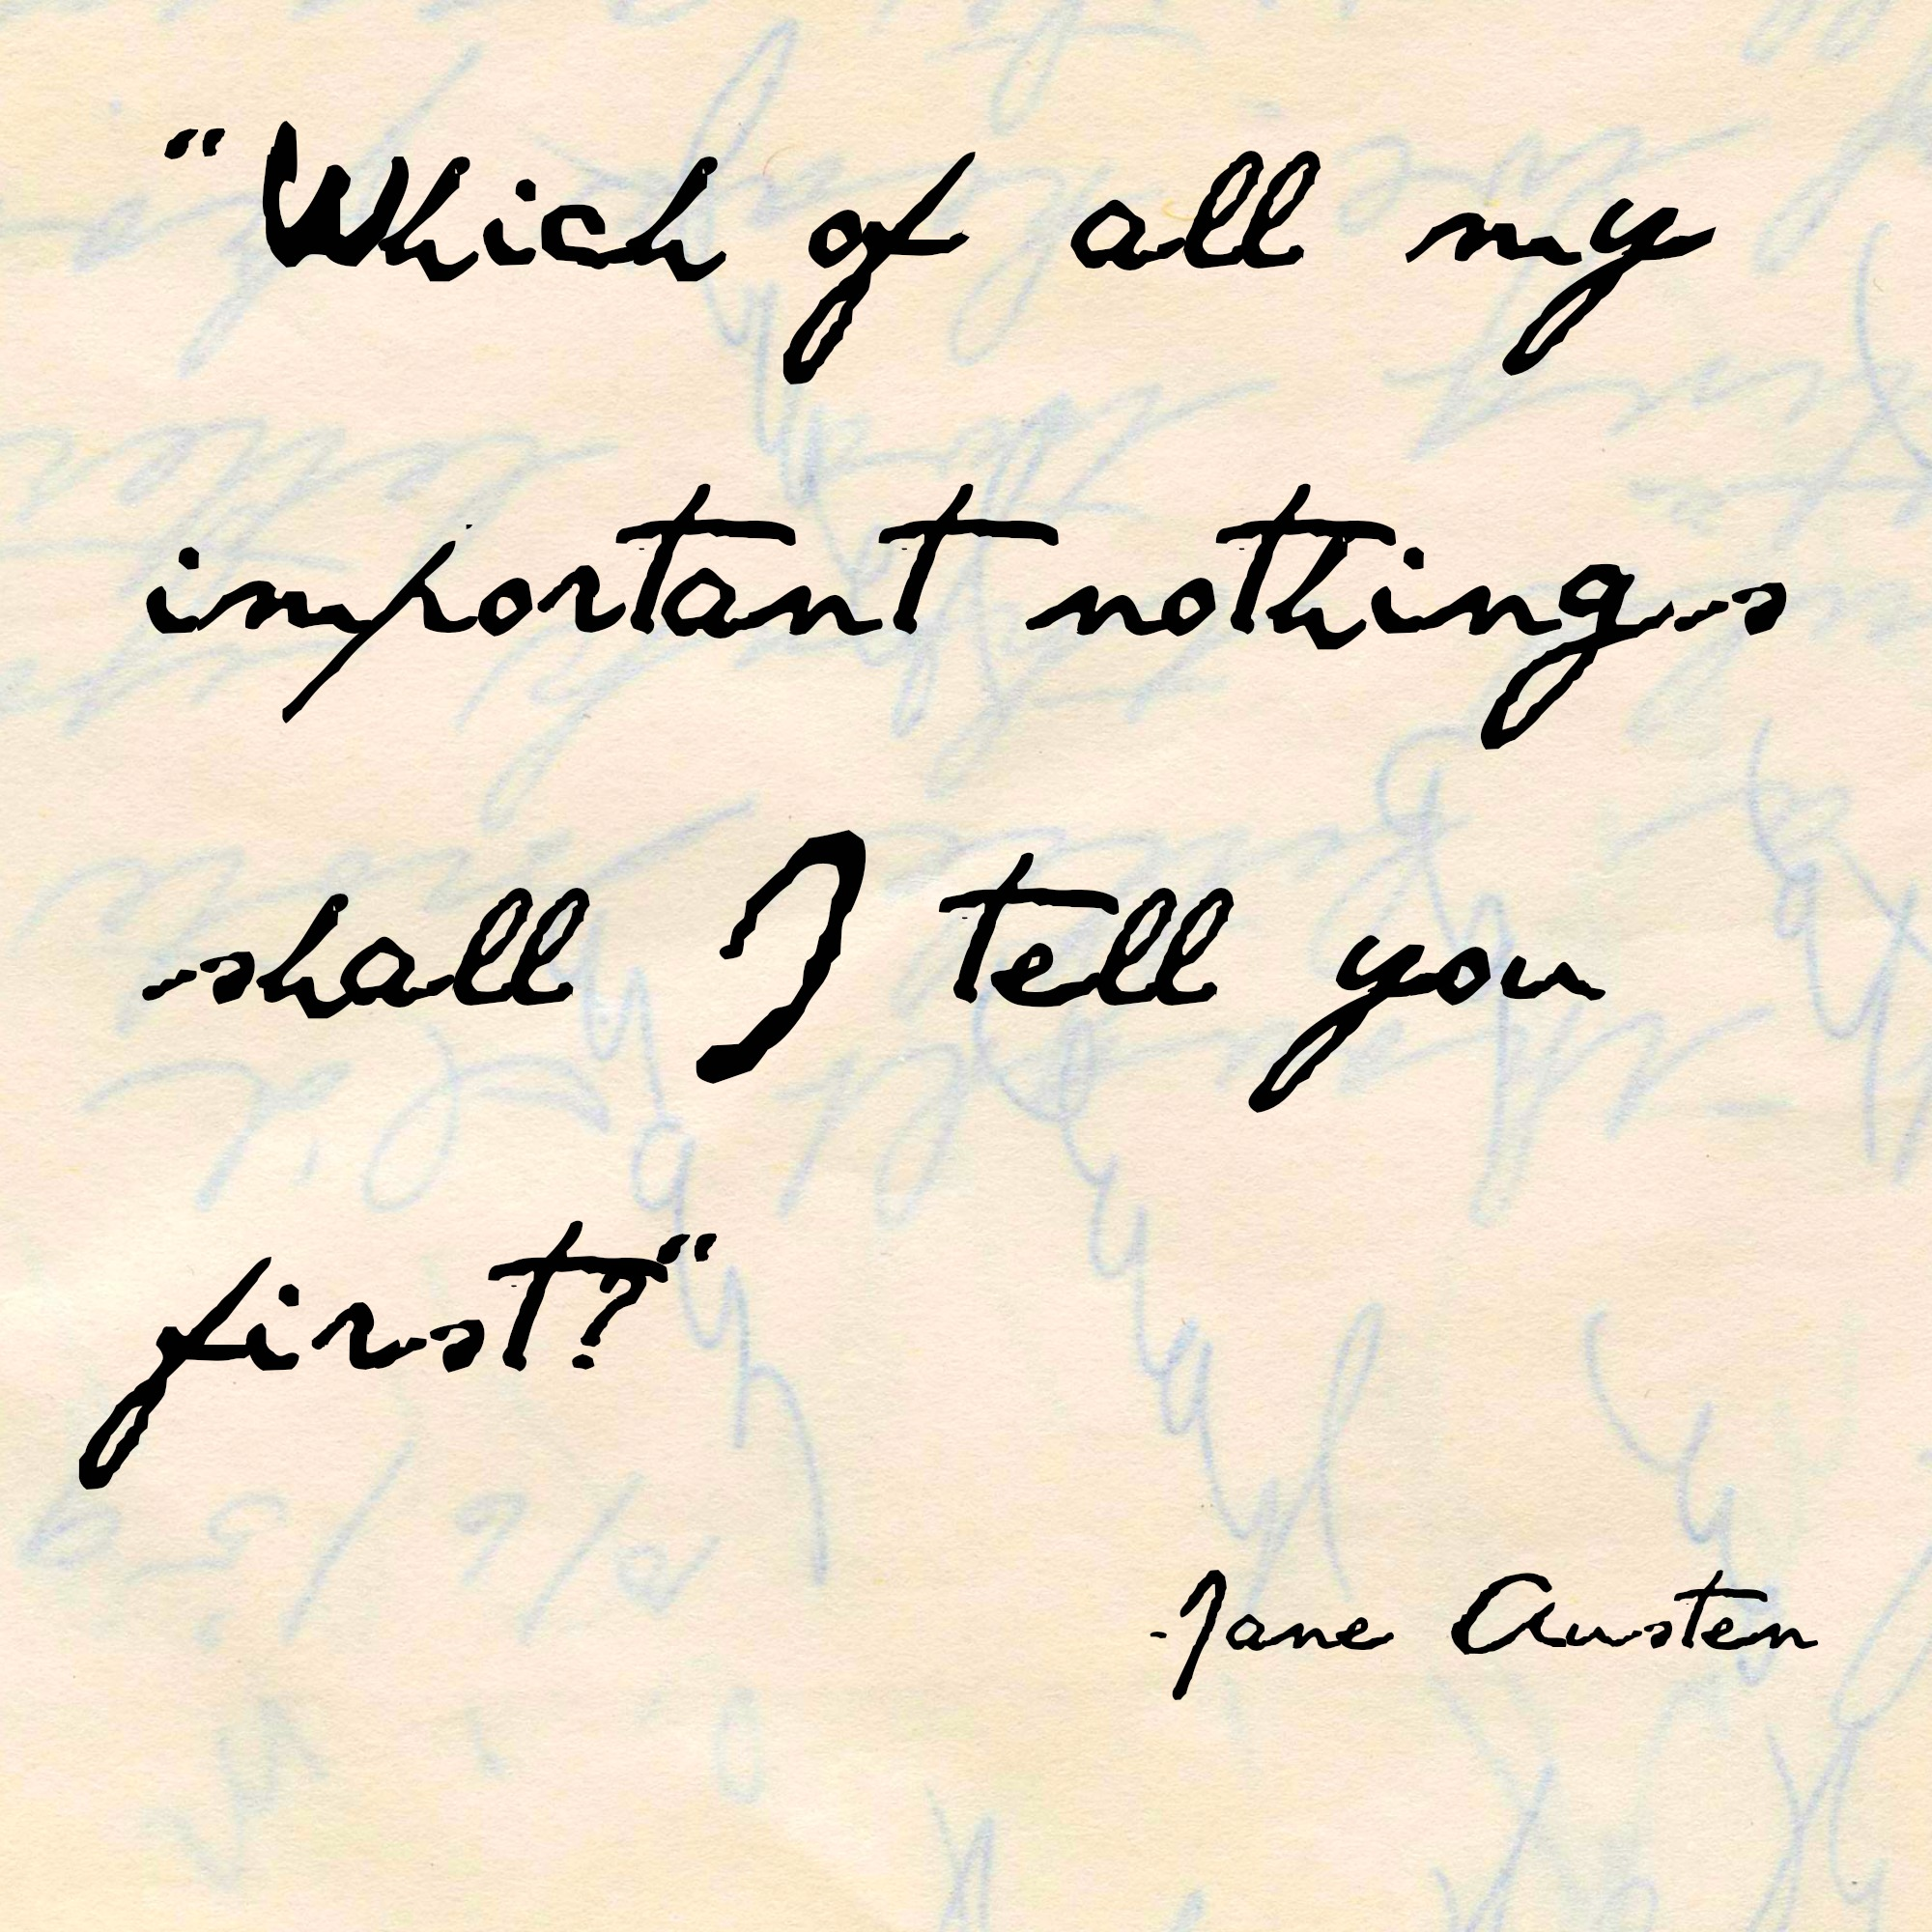 Quotes Jane Austen Quotes About Love Jane Austen 51 Quotes